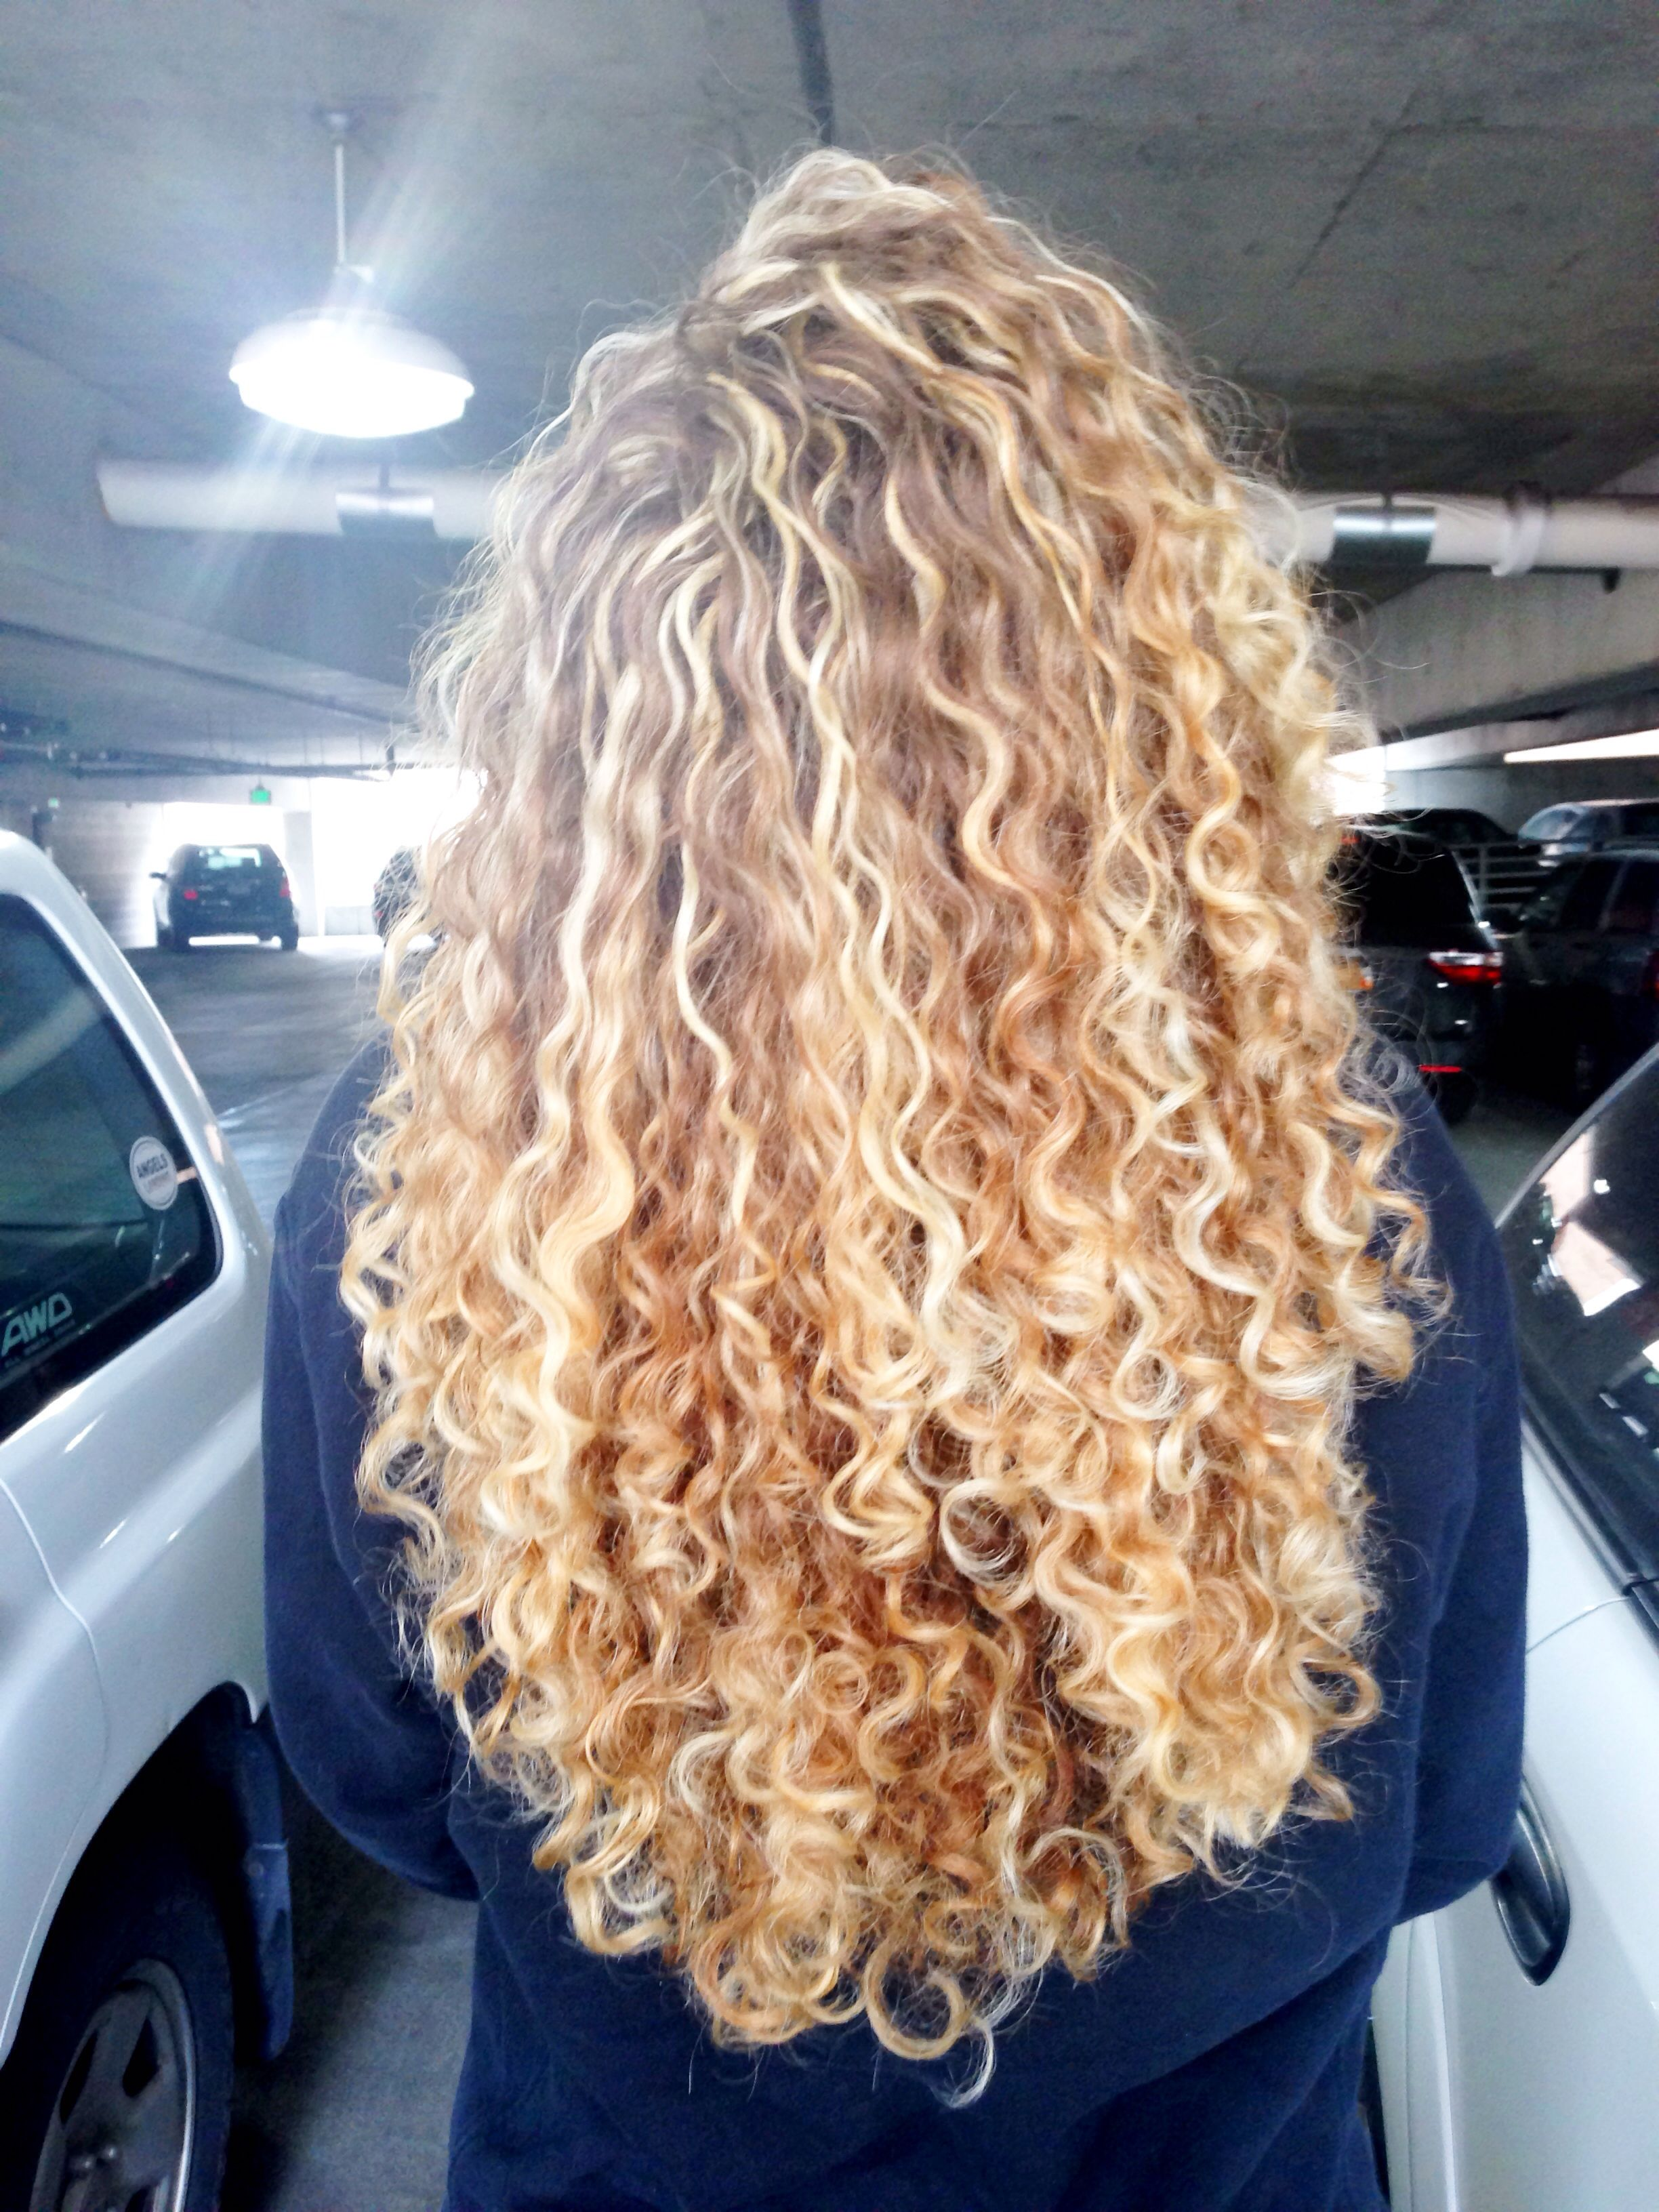 Hair Curly Blonde Hair Pinterest Curly Blonde